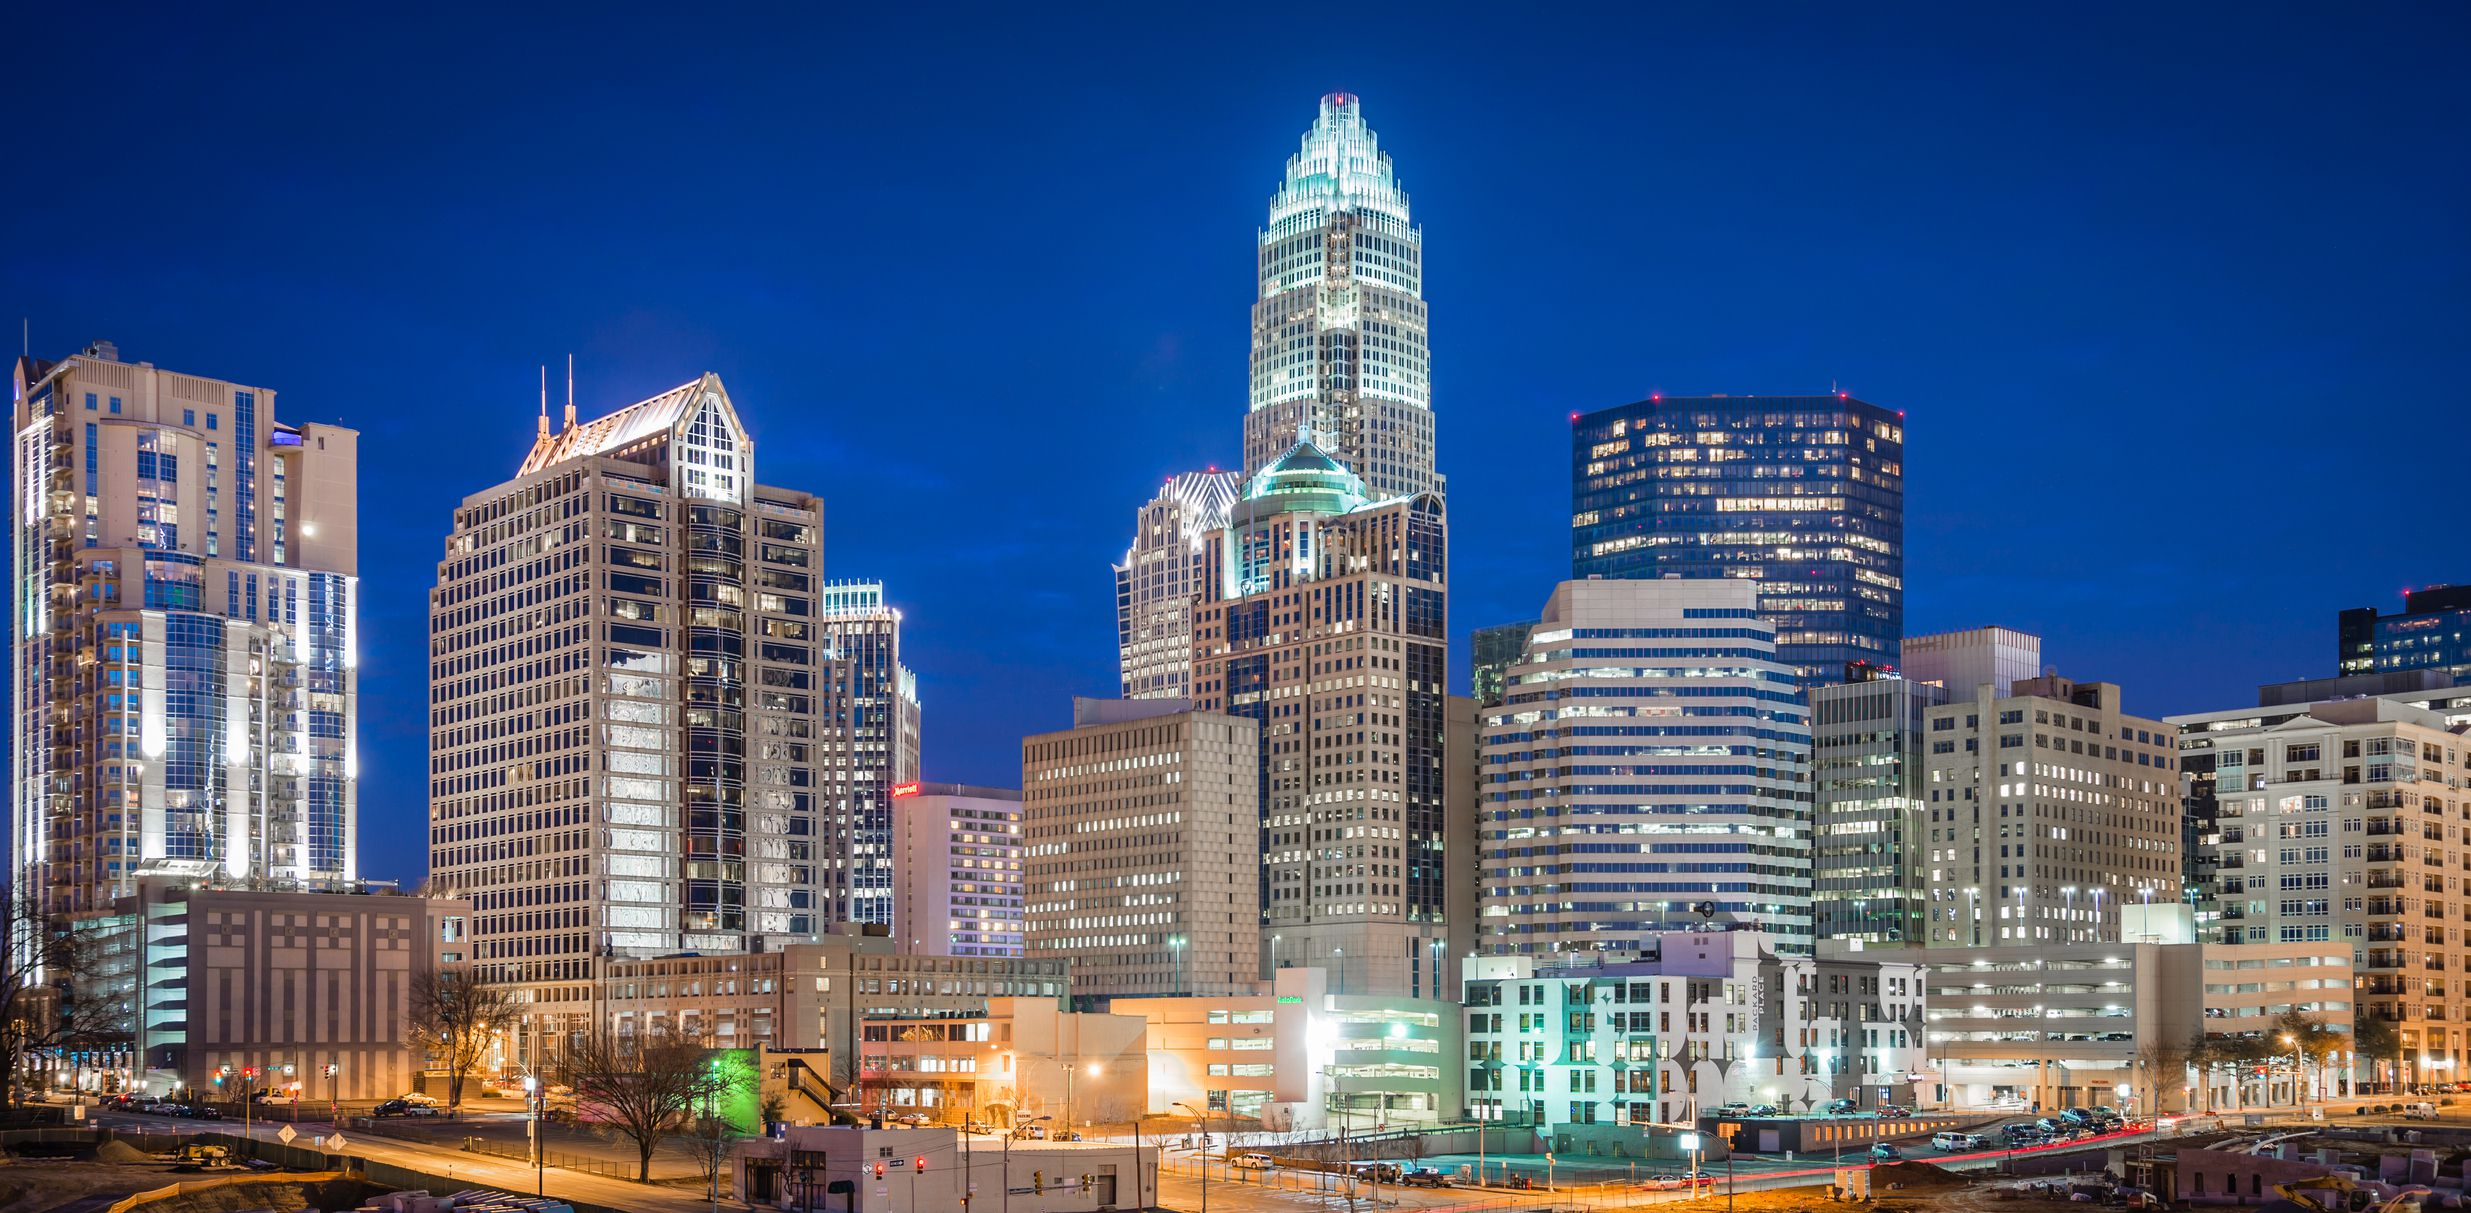 Triangle Rent A Car Raleigh Nc: Best Things To Do In The Triangle, North Carolina